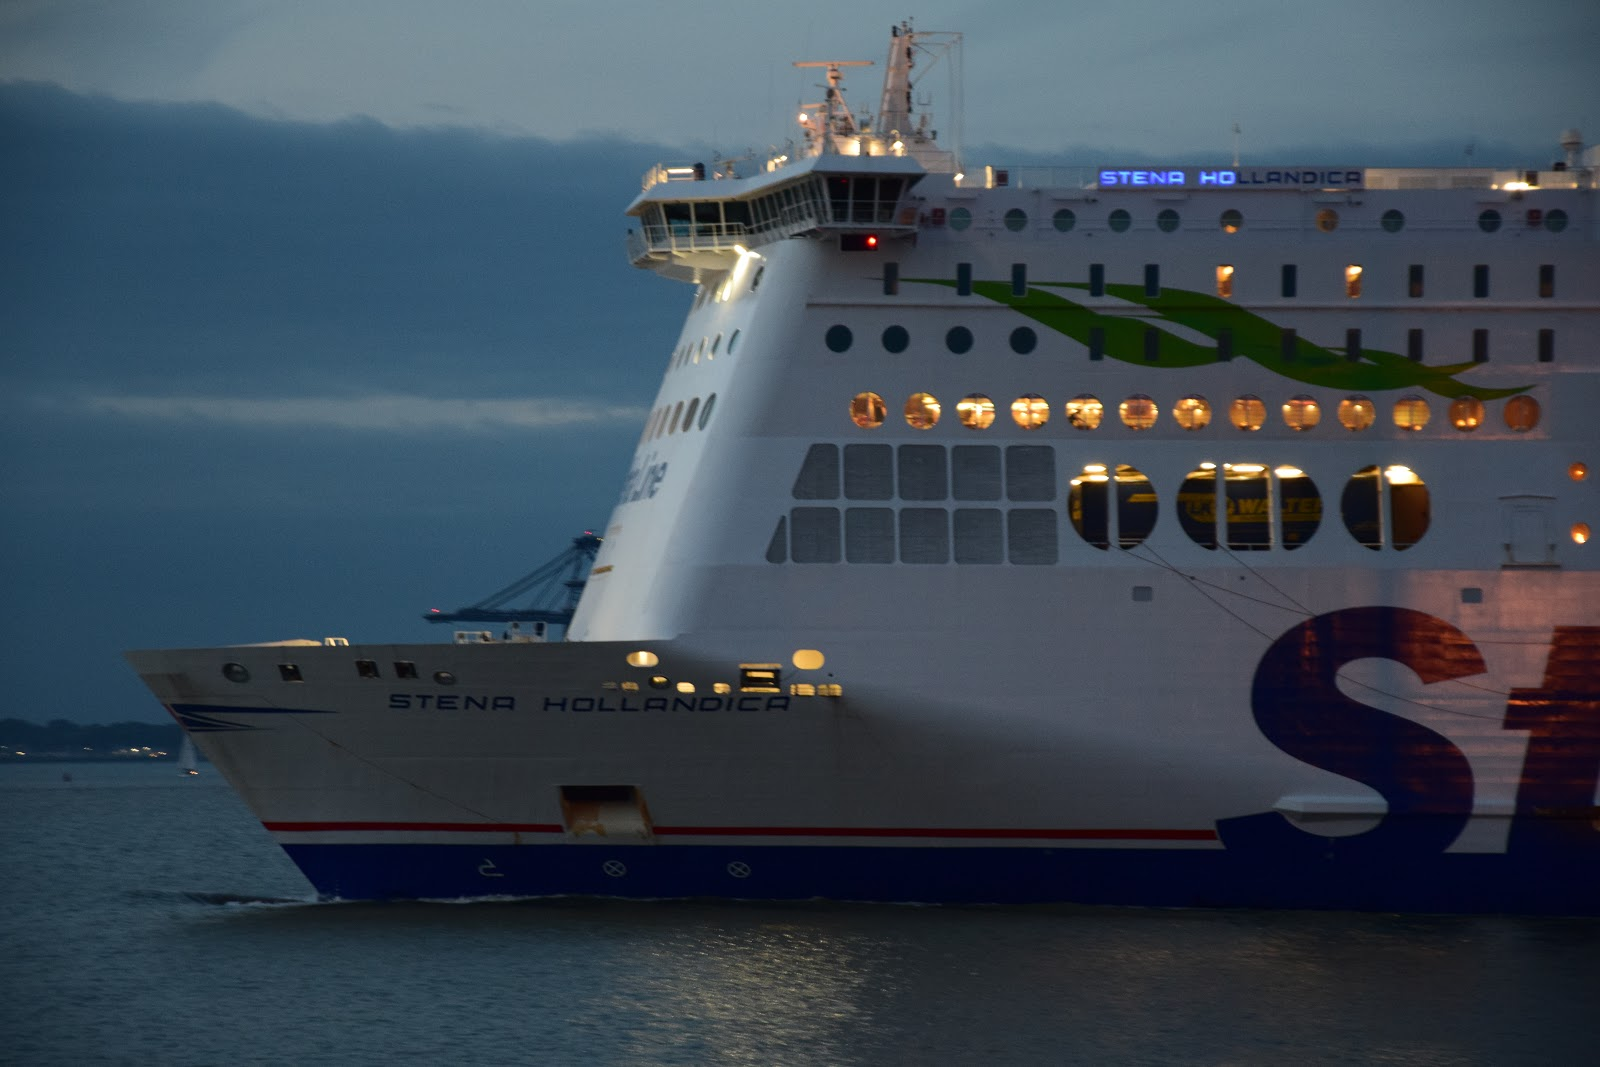 vmf-alifesailingcruiseferries blogspot co uk: Travelling in style on